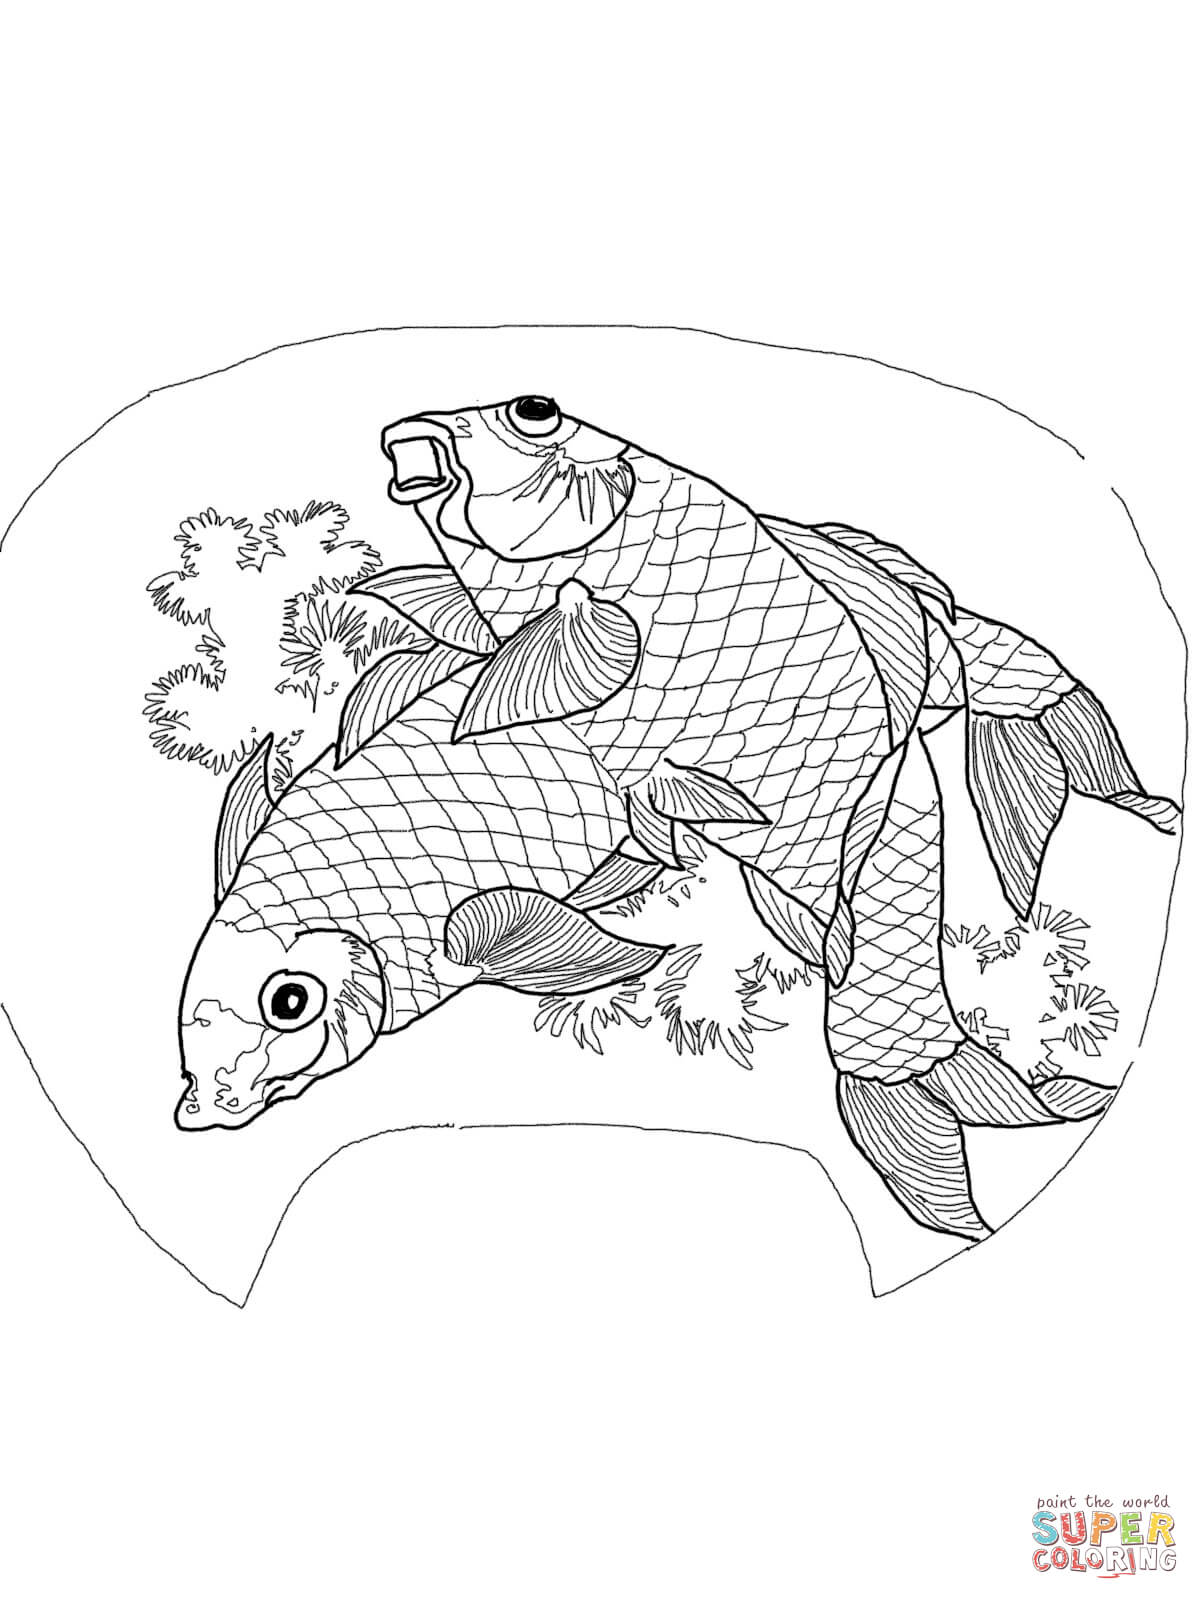 Two Carps By Katsushika Hokusai Coloring Page